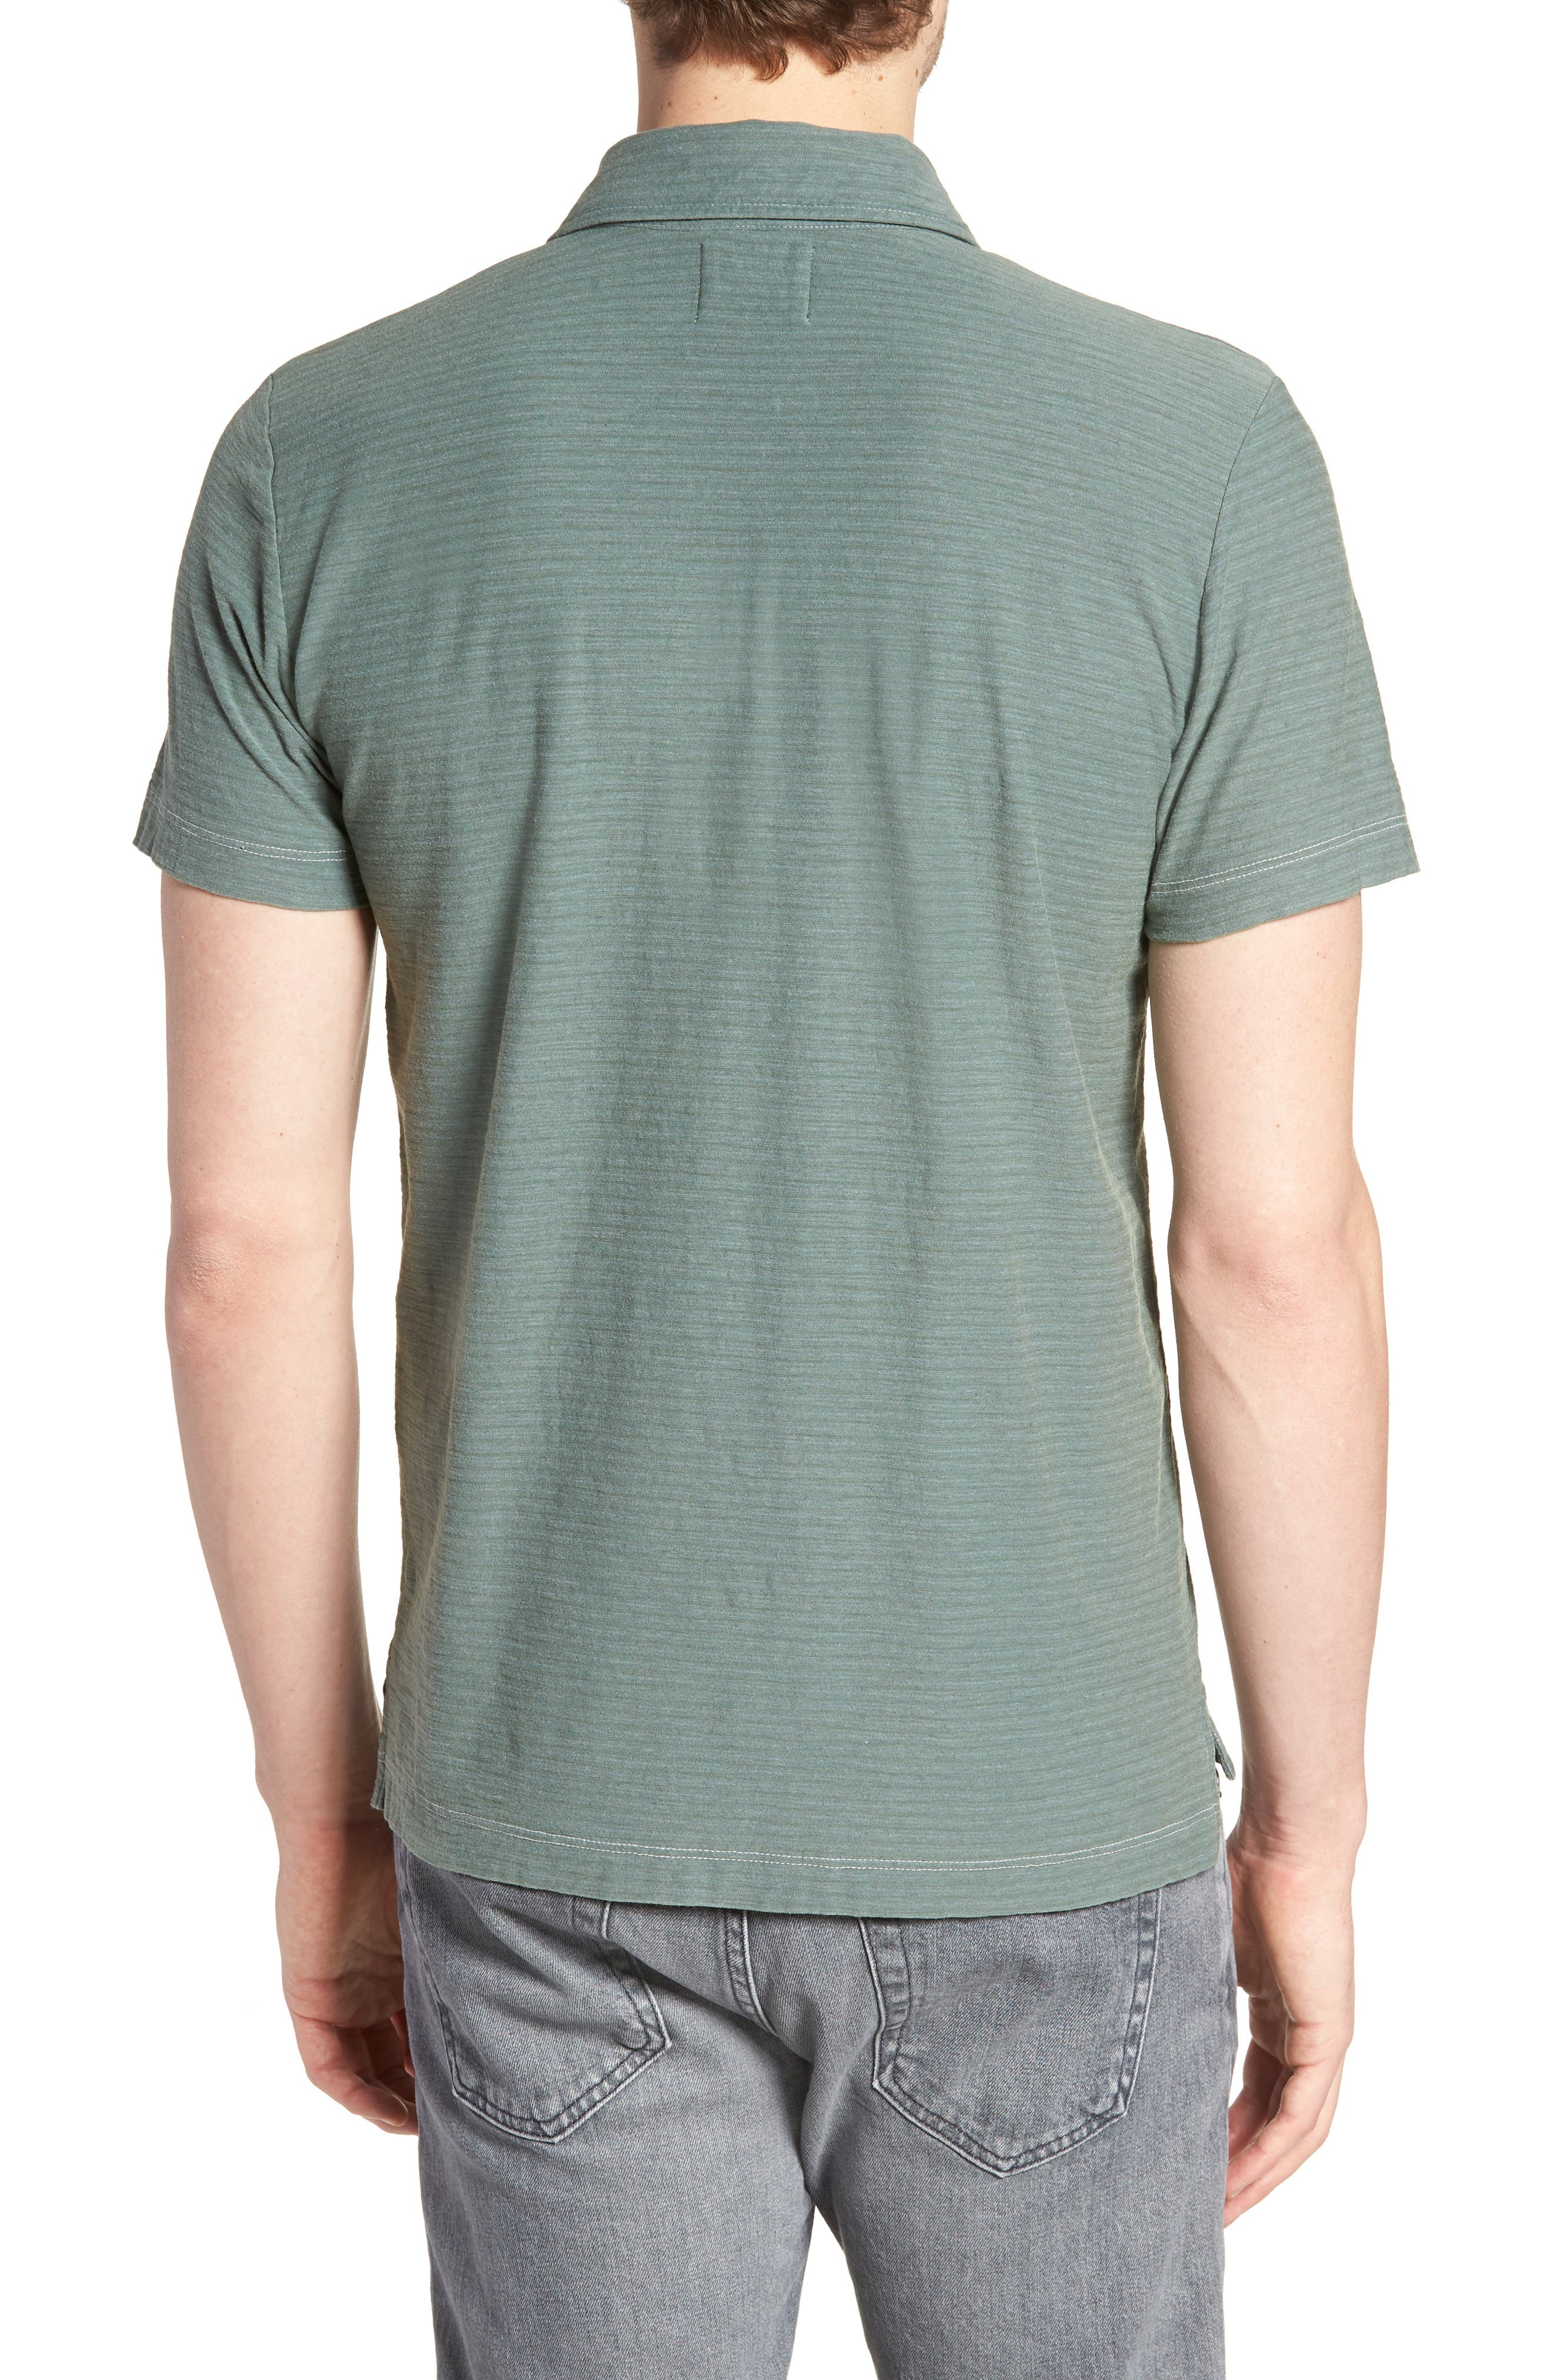 Pensacola Cotton Blend Polo Shirt,                             Alternate thumbnail 2, color,                             Sage